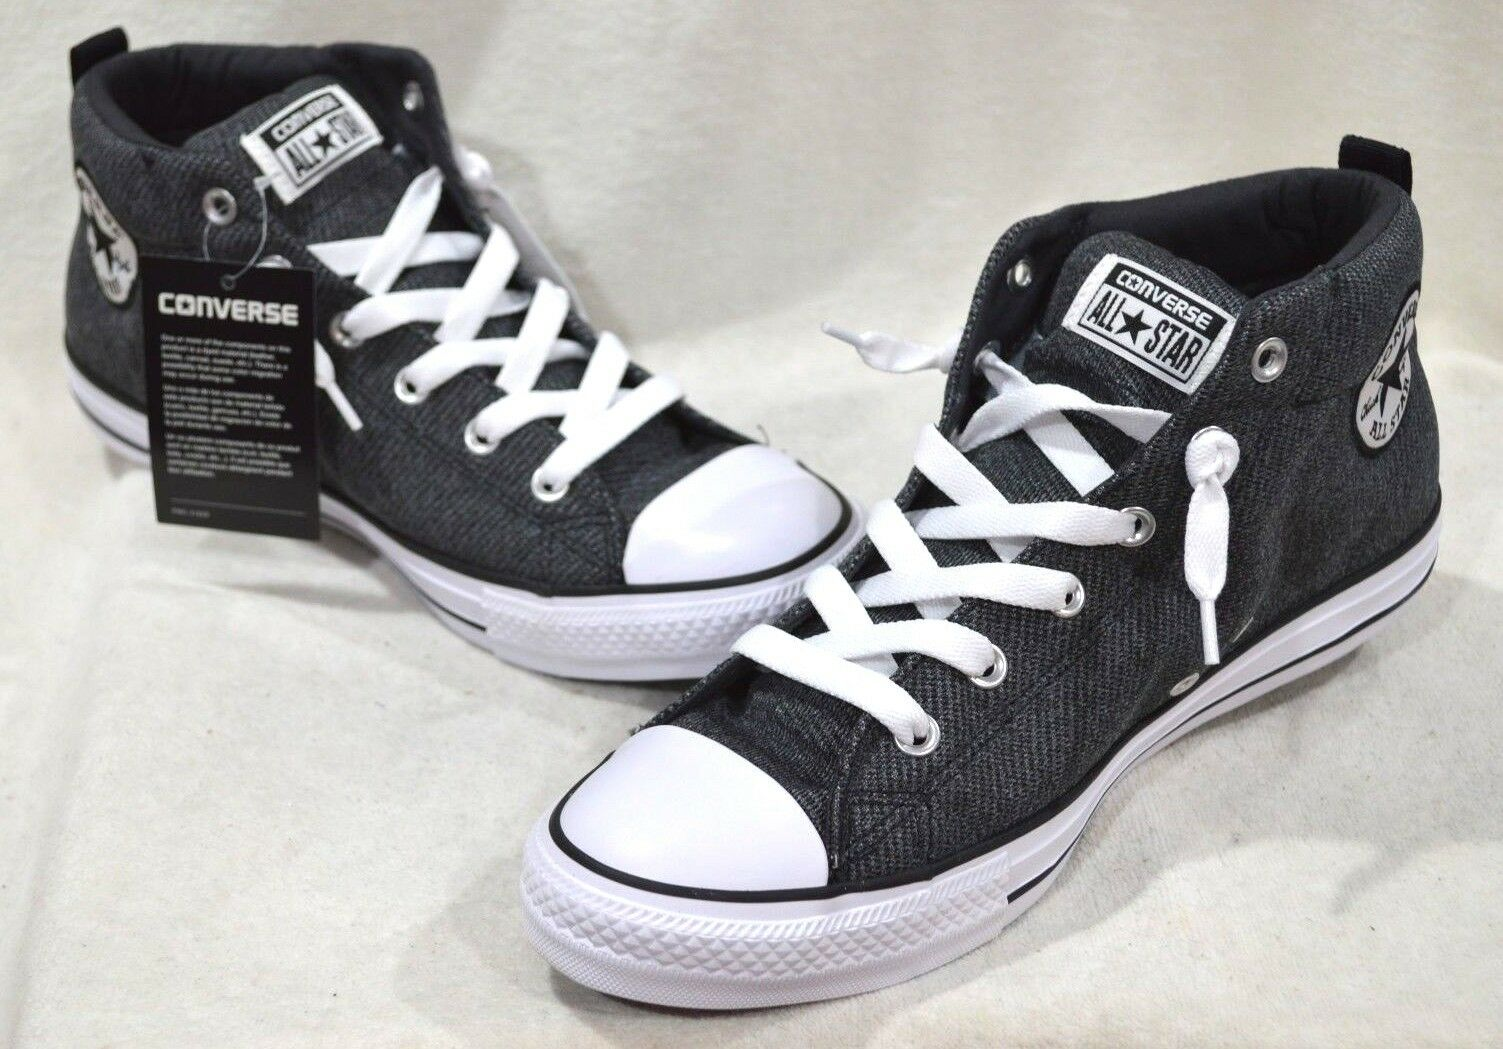 Converse Men's All Star CT Street Mid-Top NWOB Wolf Grey/Black Sneakers-Sz 10/12 NWOB Mid-Top a886a1